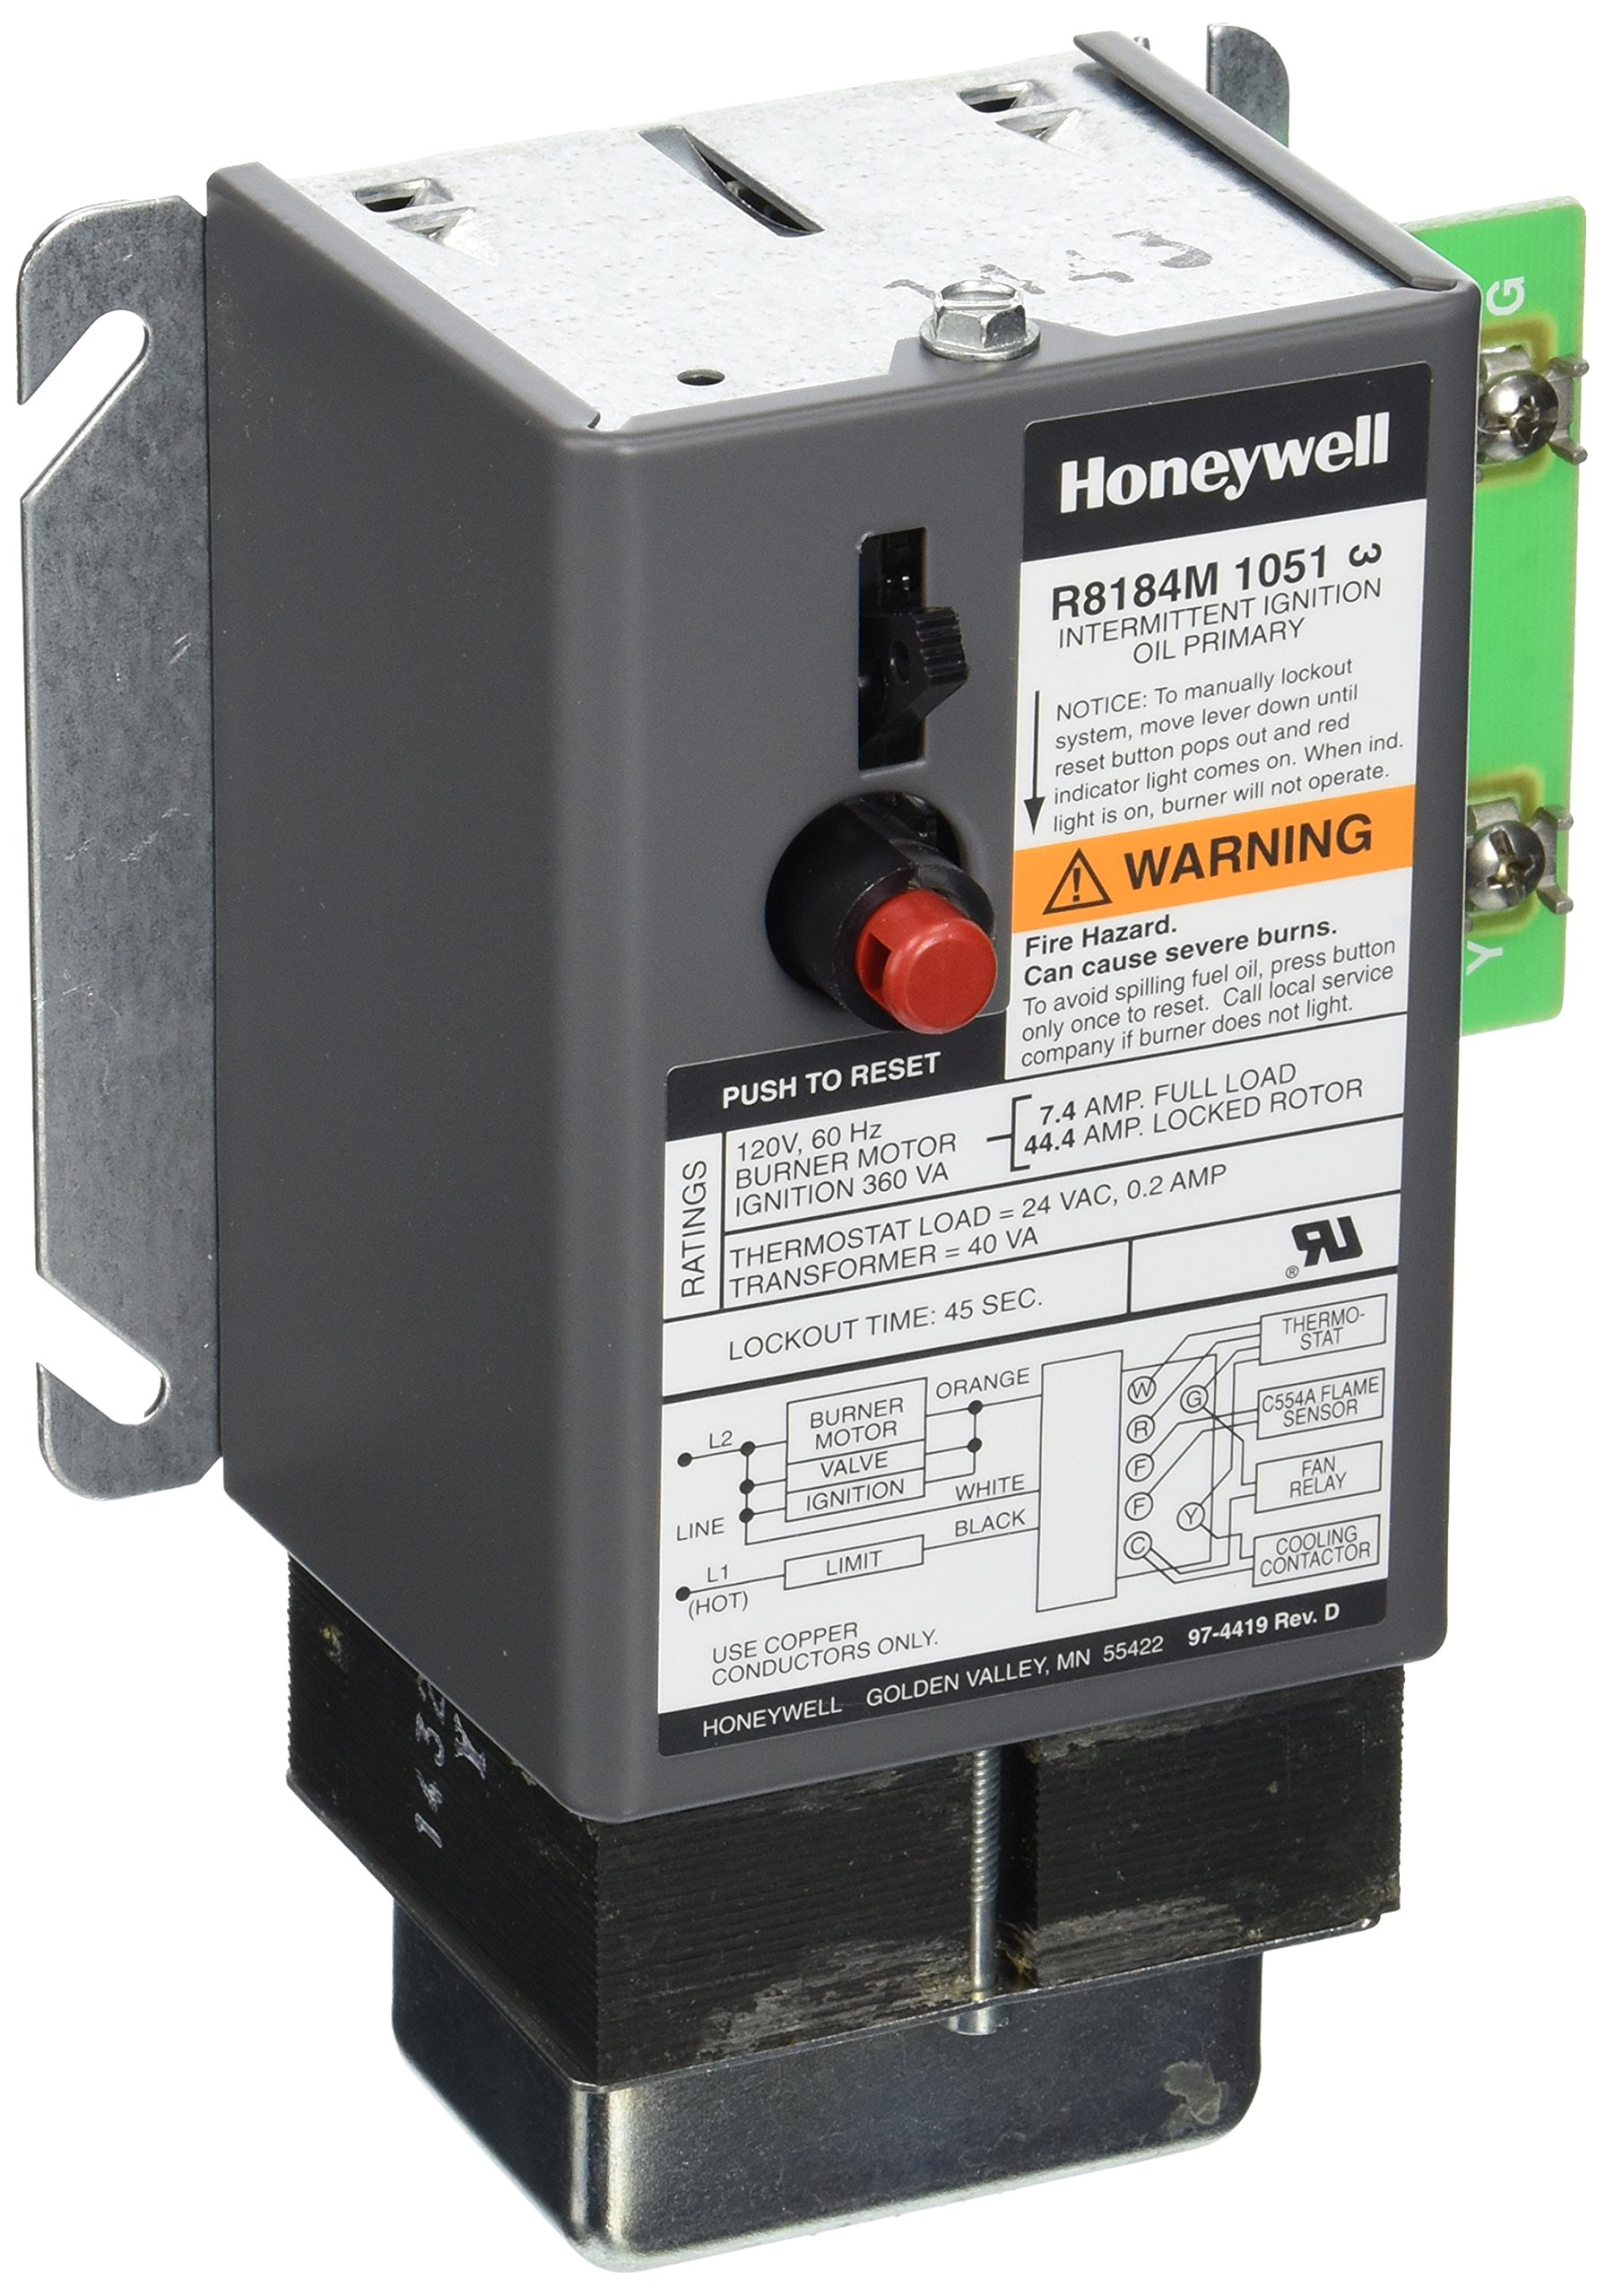 cheap honeywell oil burner find honeywell oil burner deals on line rh guide alibaba com Honeywell Zone Valve Wiring Diagram Honeywell Stack Control